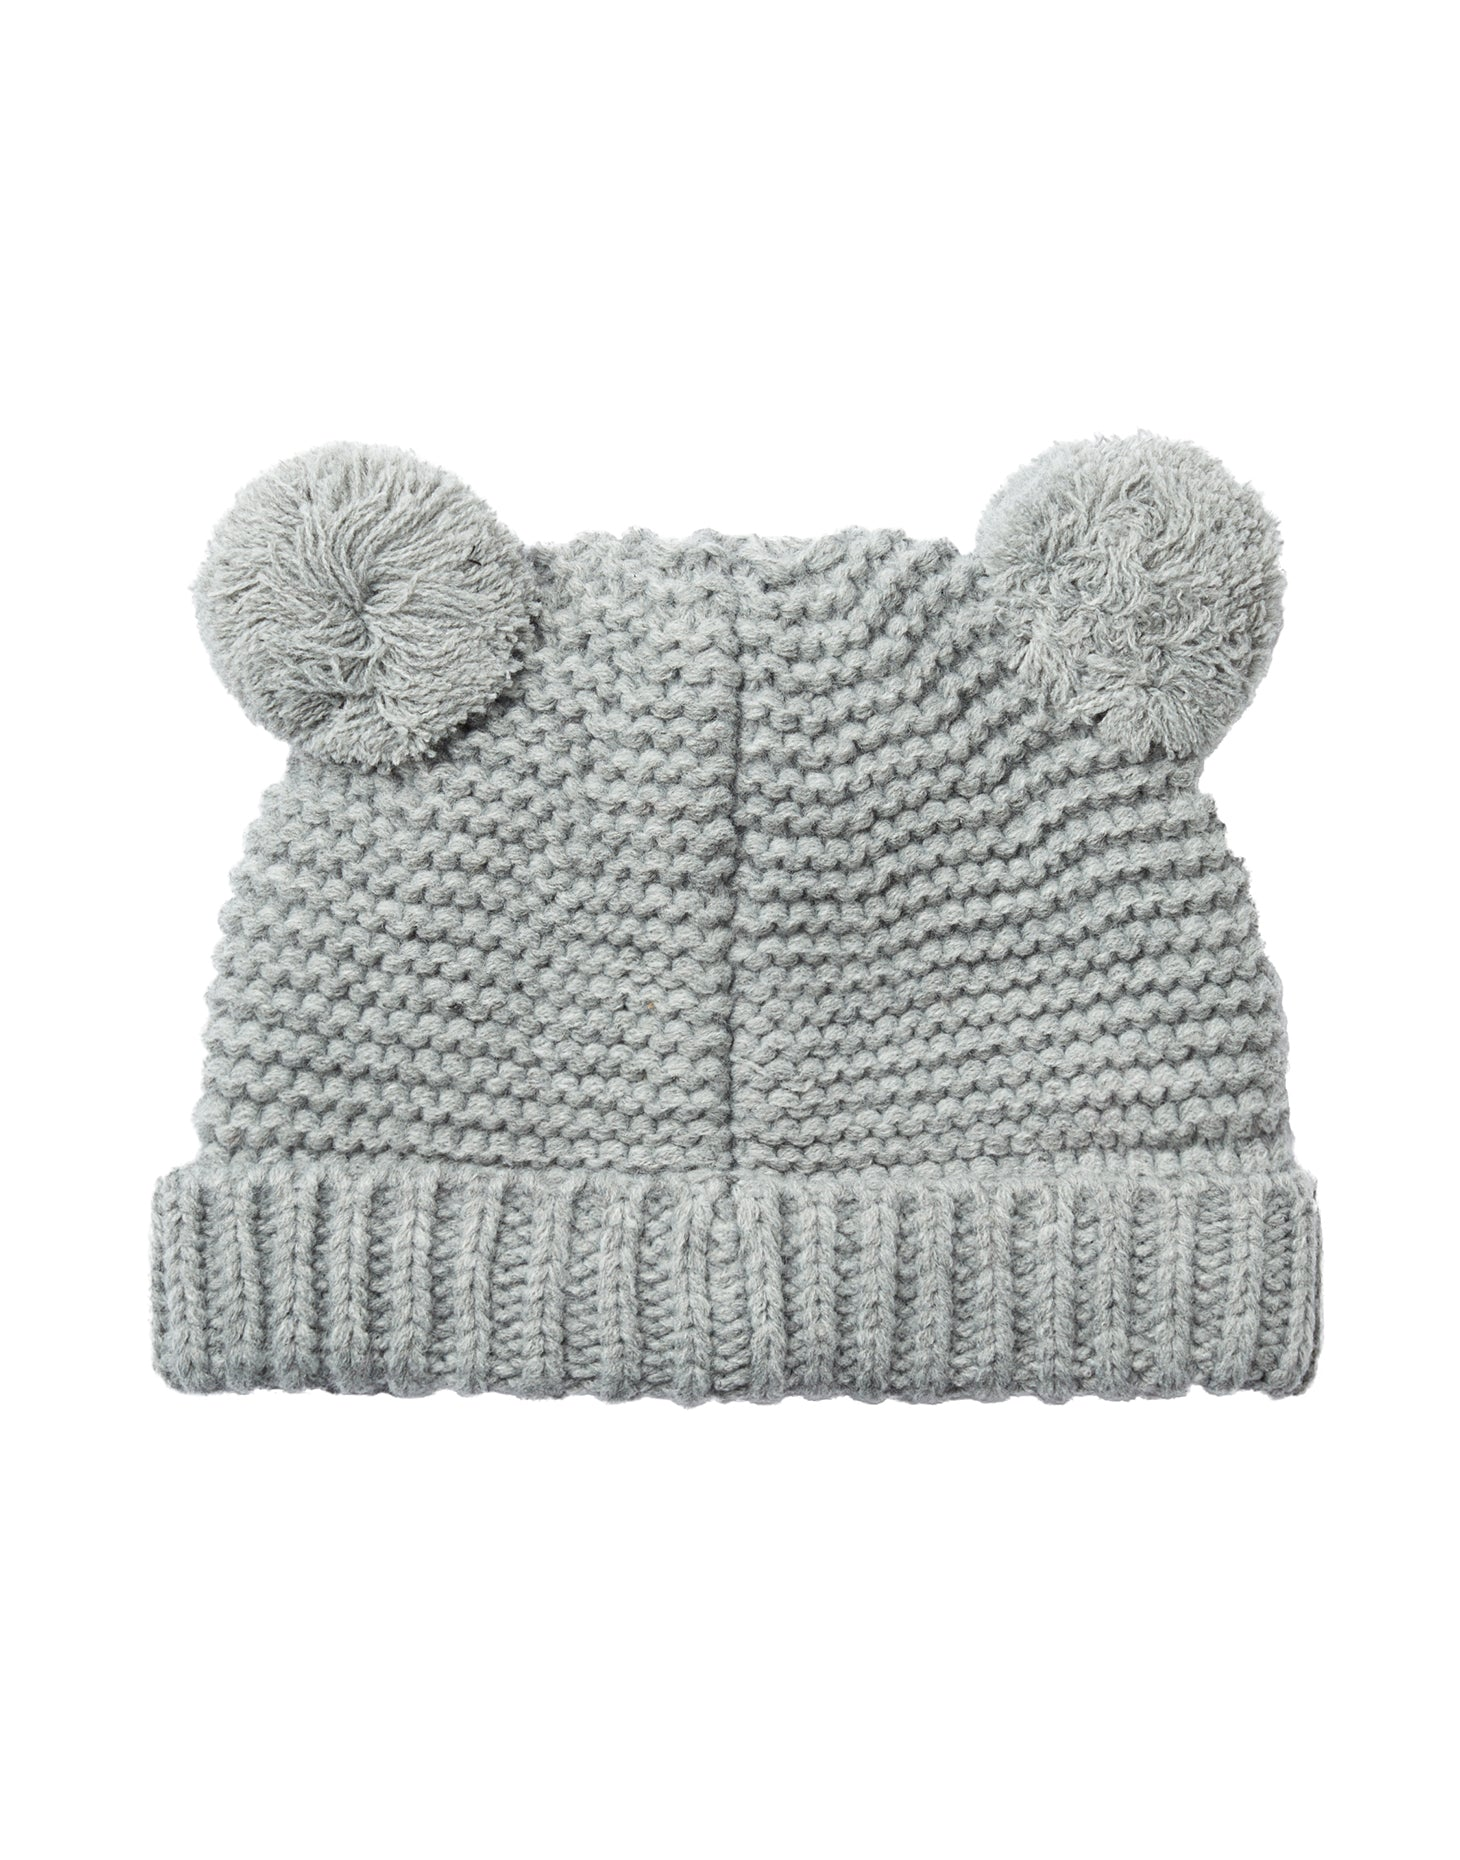 Grey Marl Pom Pom Knitted Hat